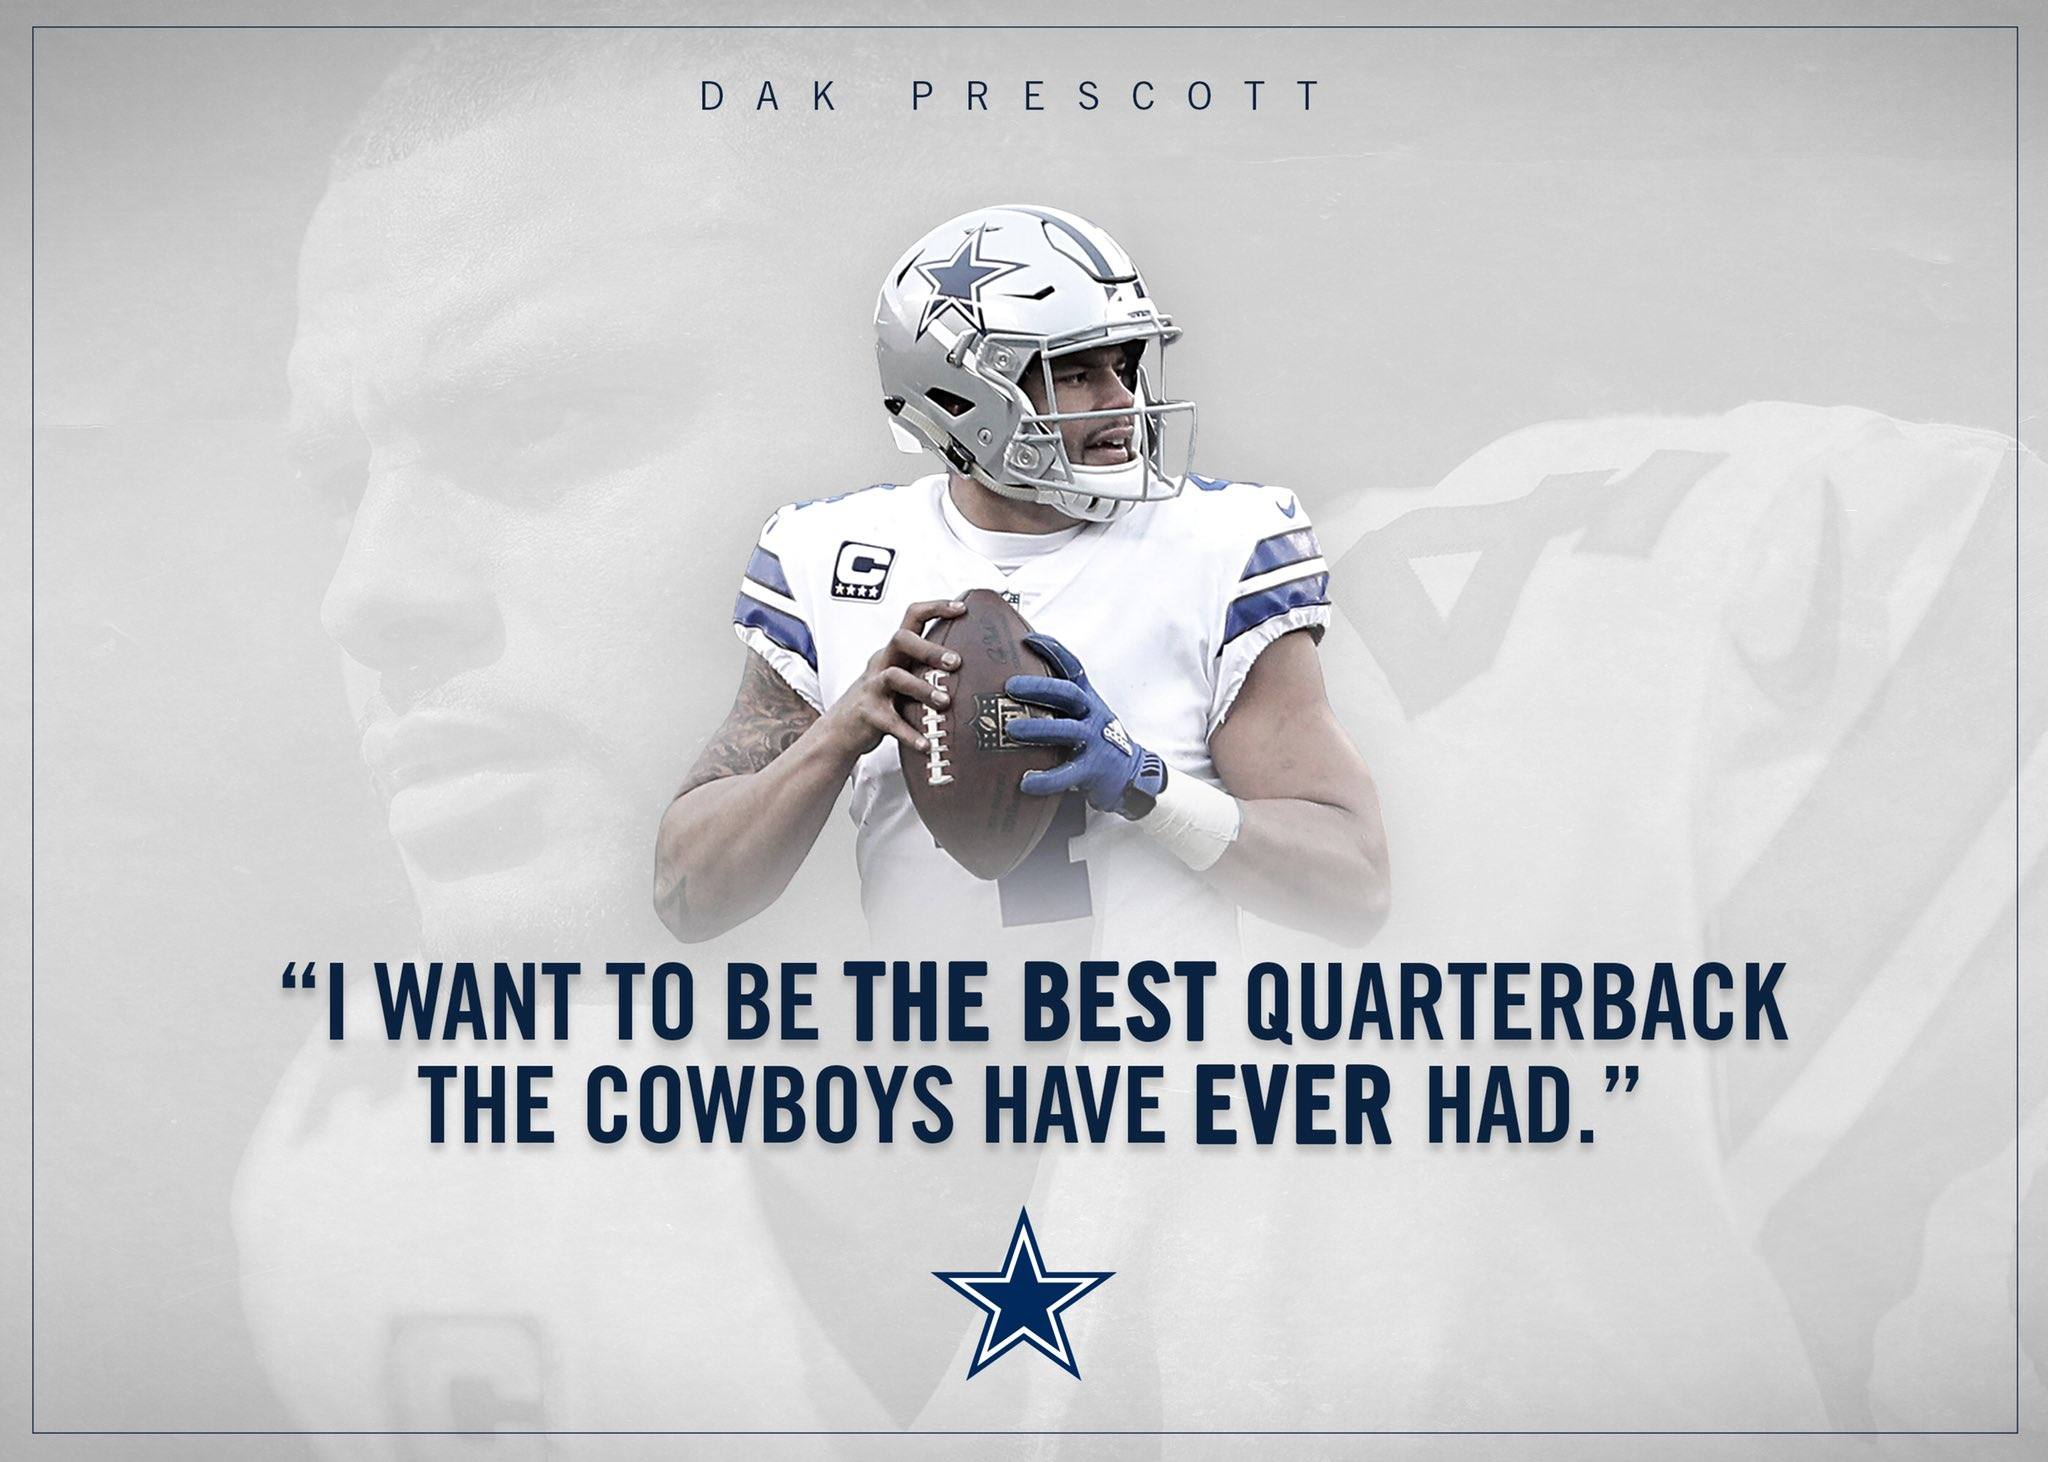 Mauriciorodriguez_dallas-cowboys_dak-wants-to-be-cowboys-greatest-qb-ever-and-you-should-be-excited-about-it